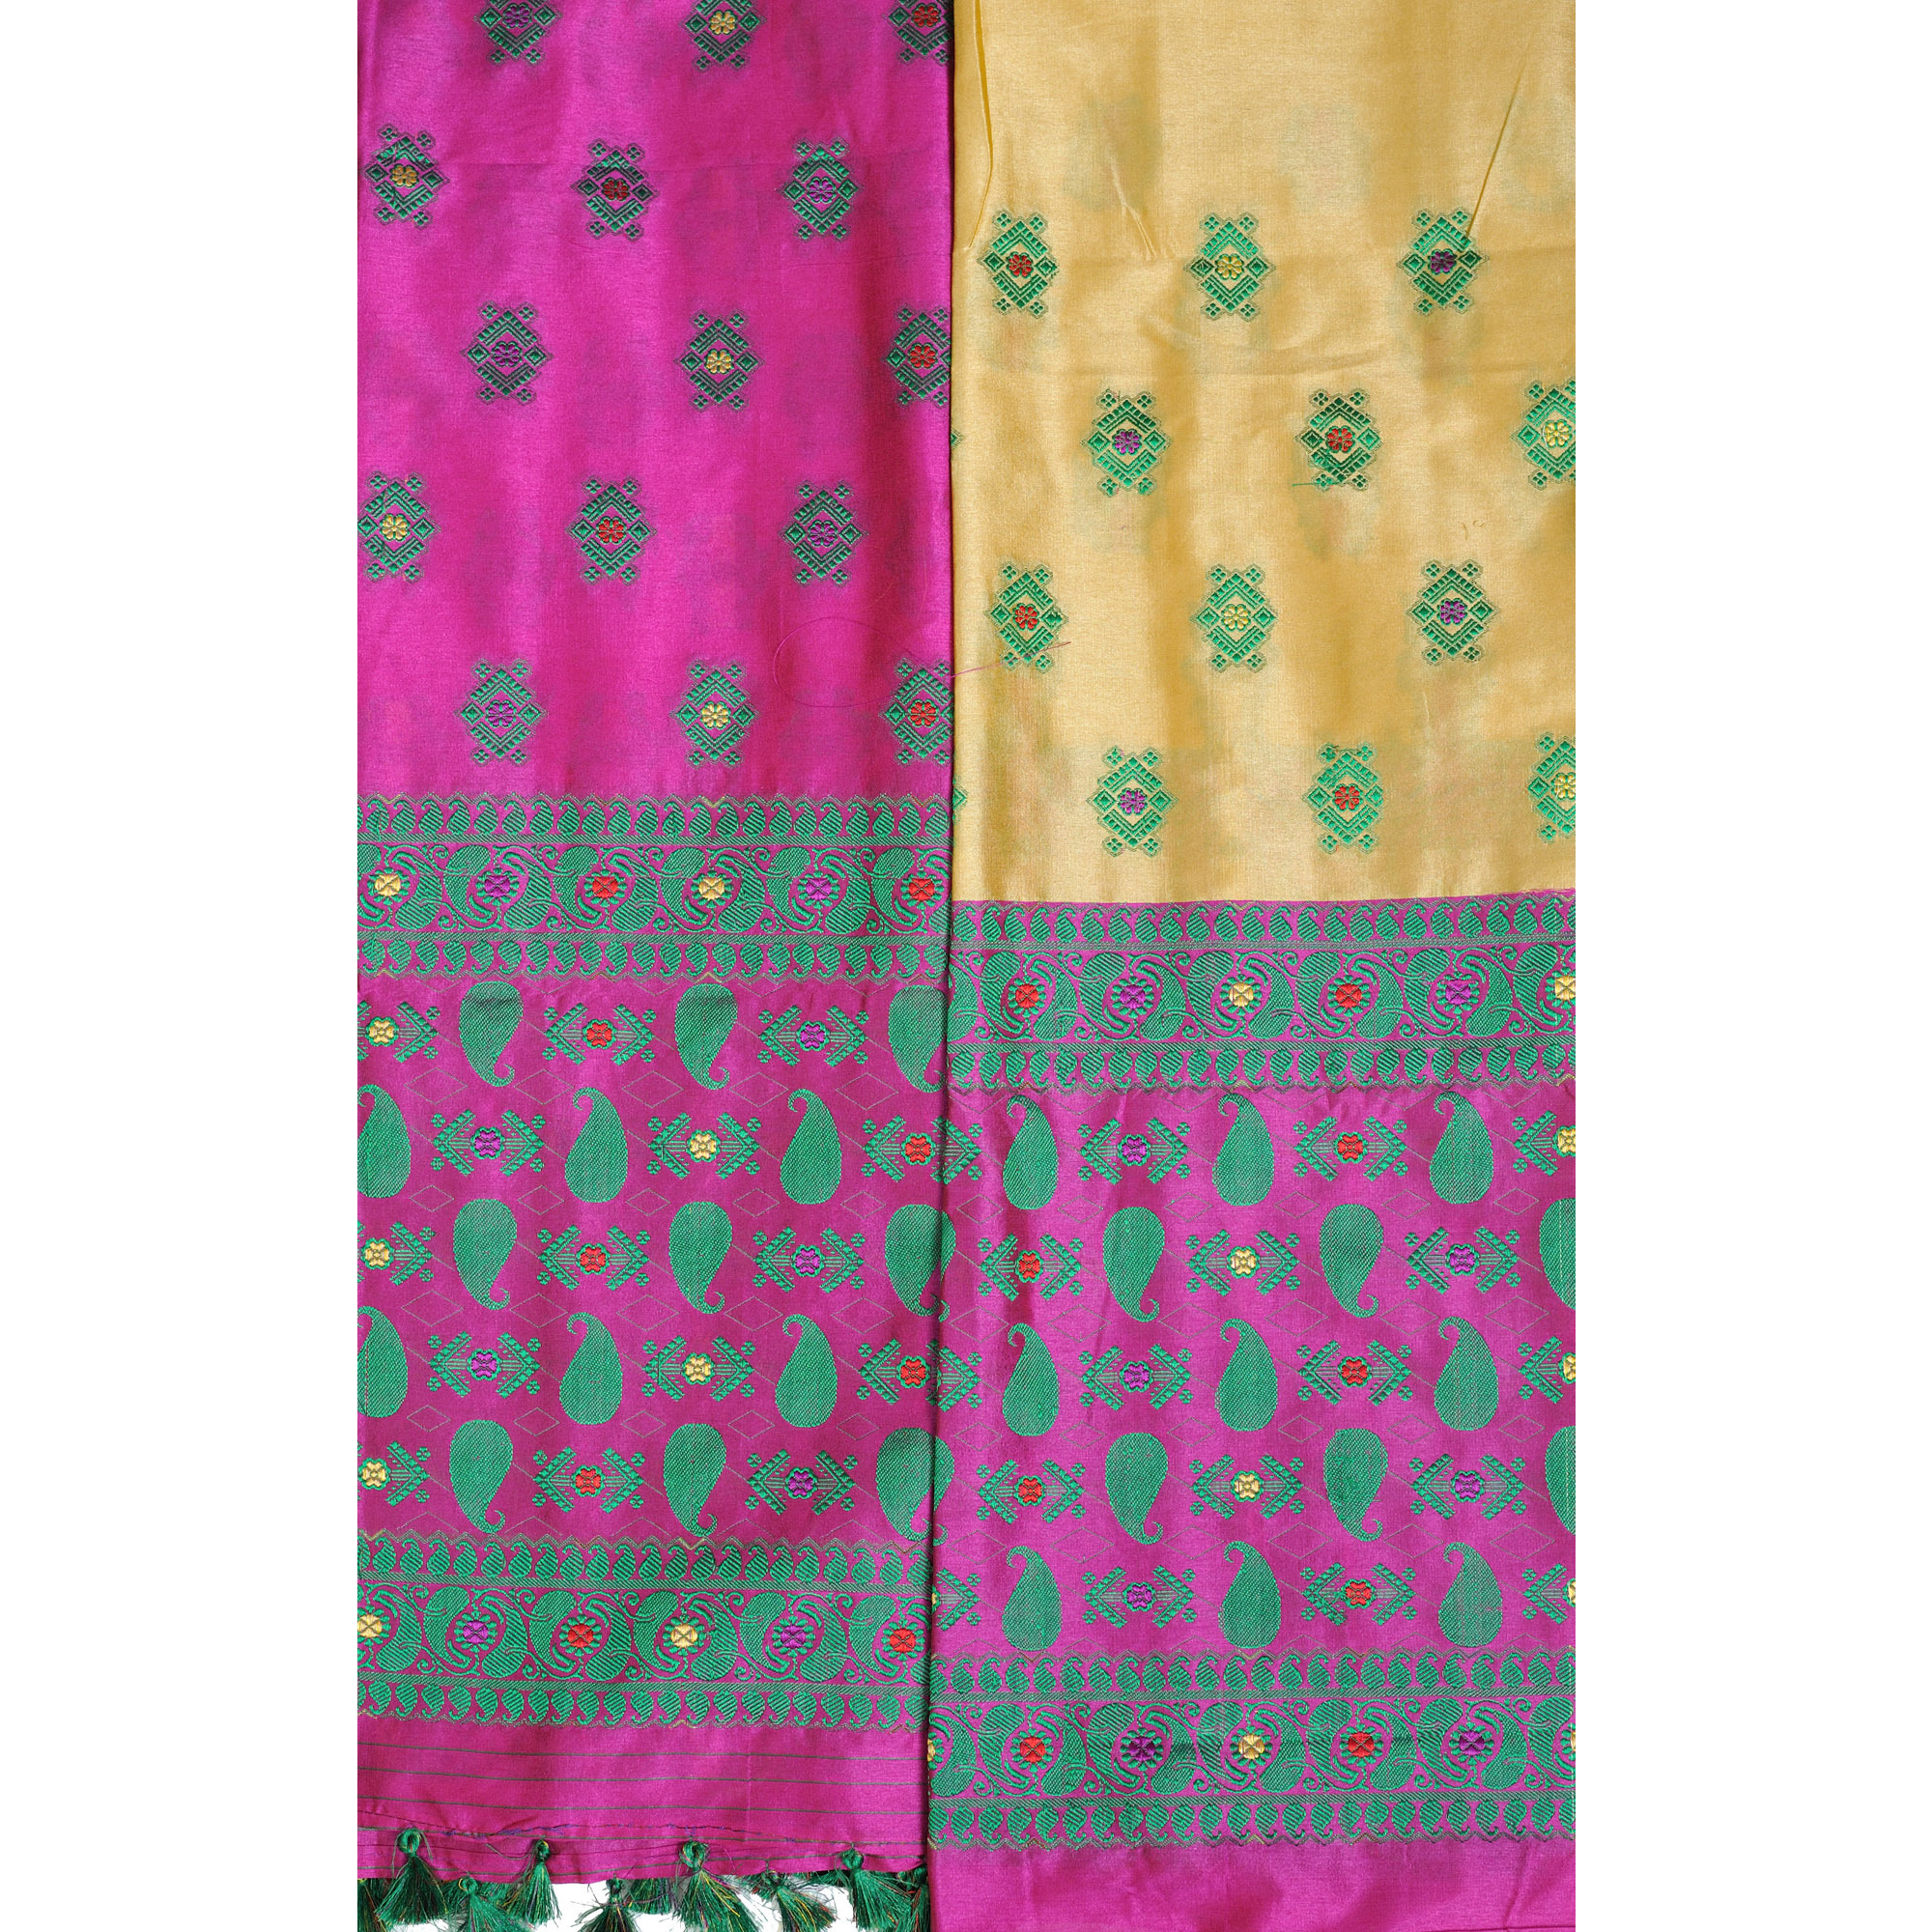 Italian-Straw and Rosebud Suit Fabric with Dupatta from Assam with Woven Bootis and Paisleys